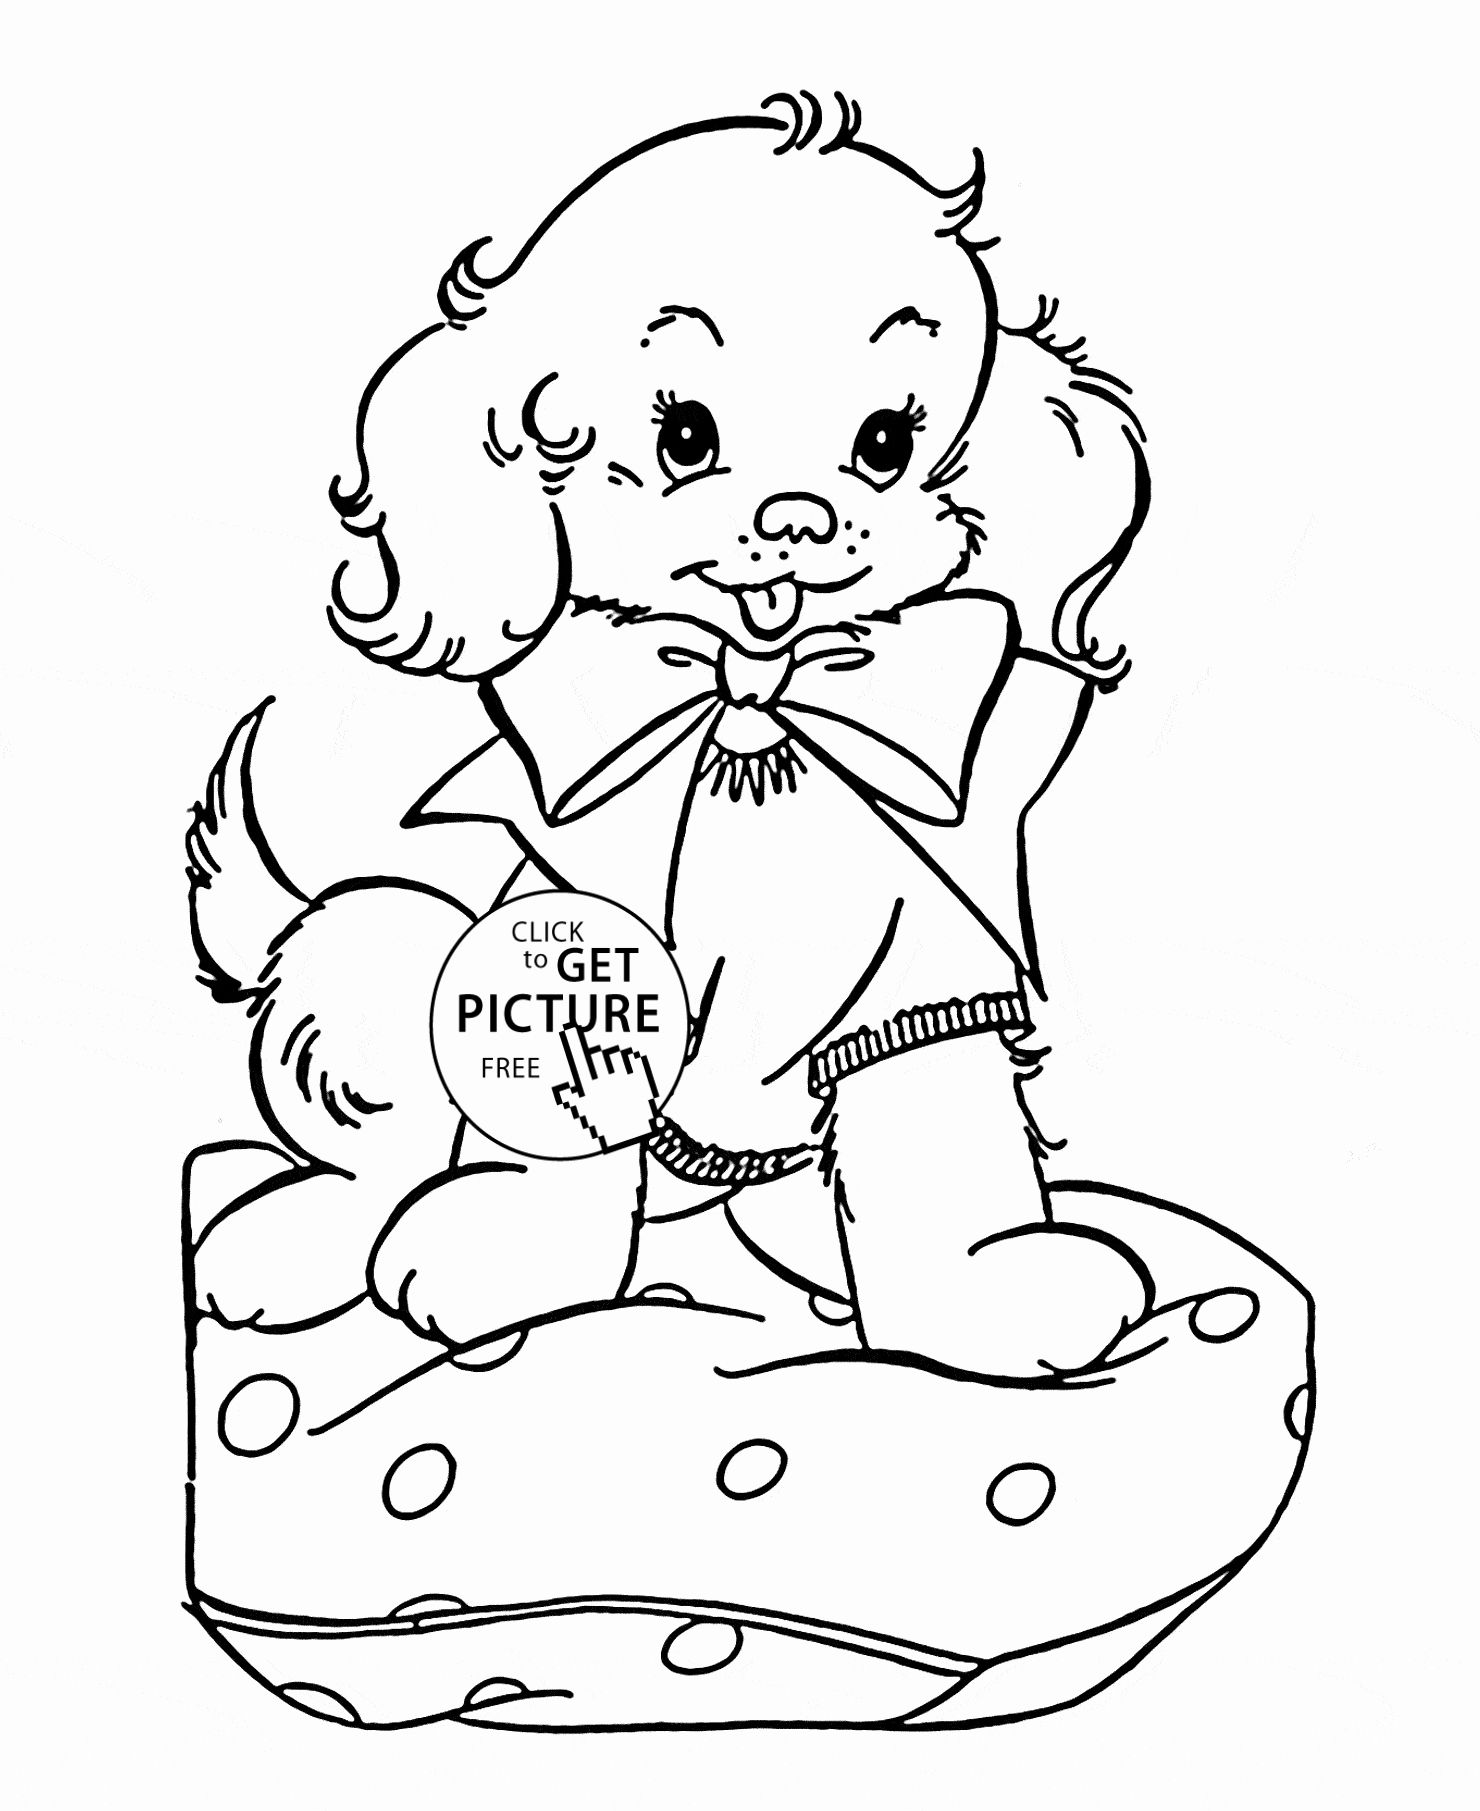 difficult dog coloring pages dog coloring page to print and color nature by dog pages difficult coloring